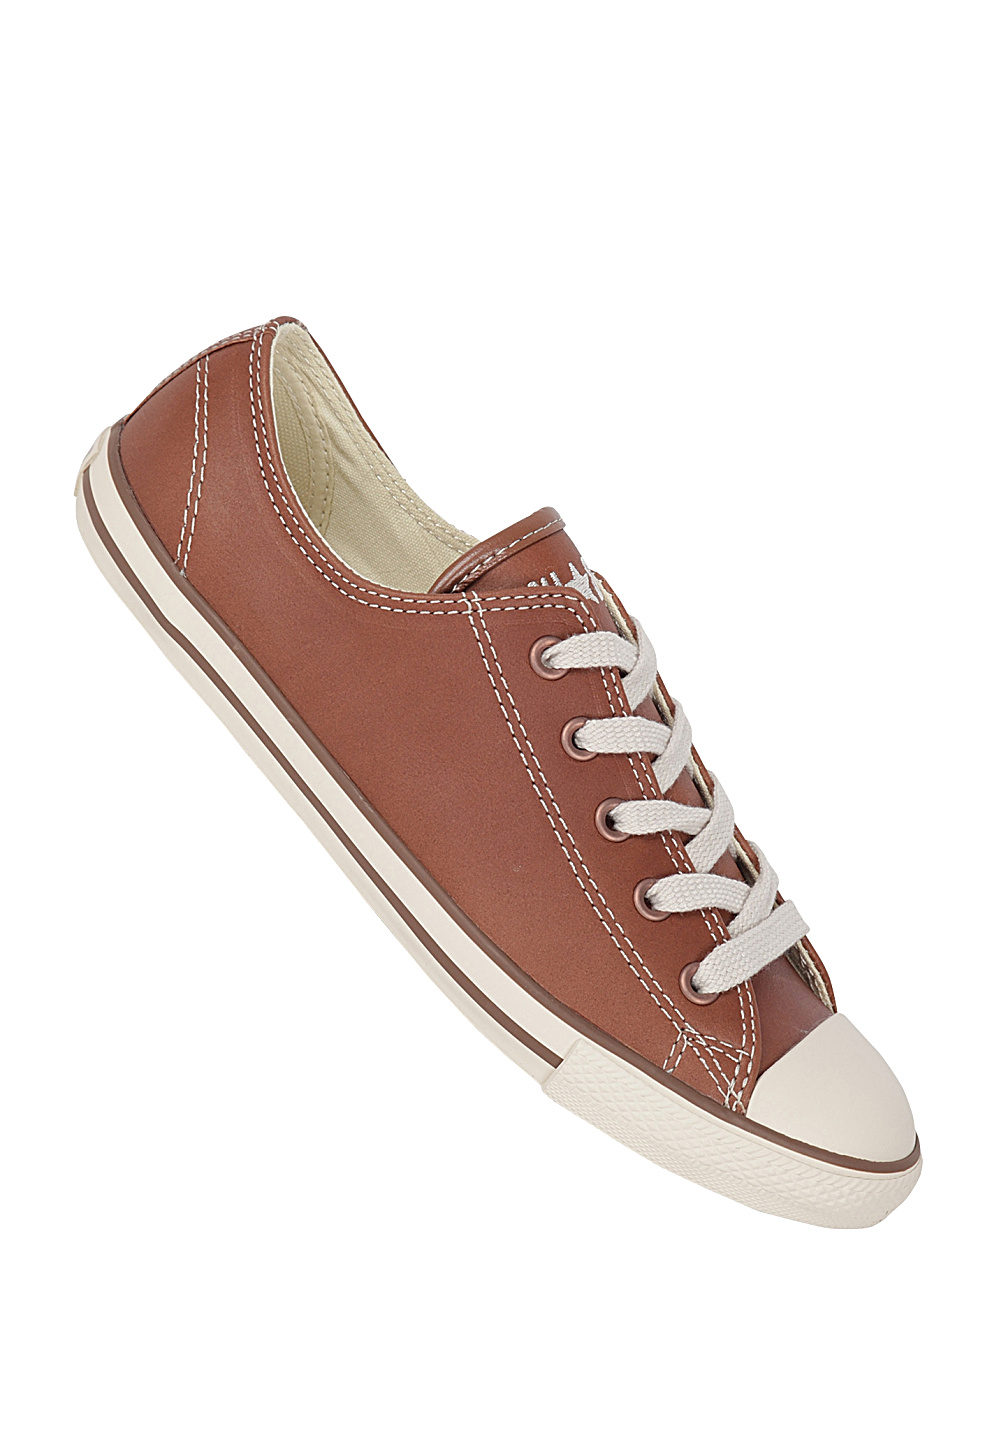 5ec604c9dab Next. -75%. This product is currently out of stock. Converse. Chuck Taylor  All Star Dainty Ox Leather - Sneakers for Women